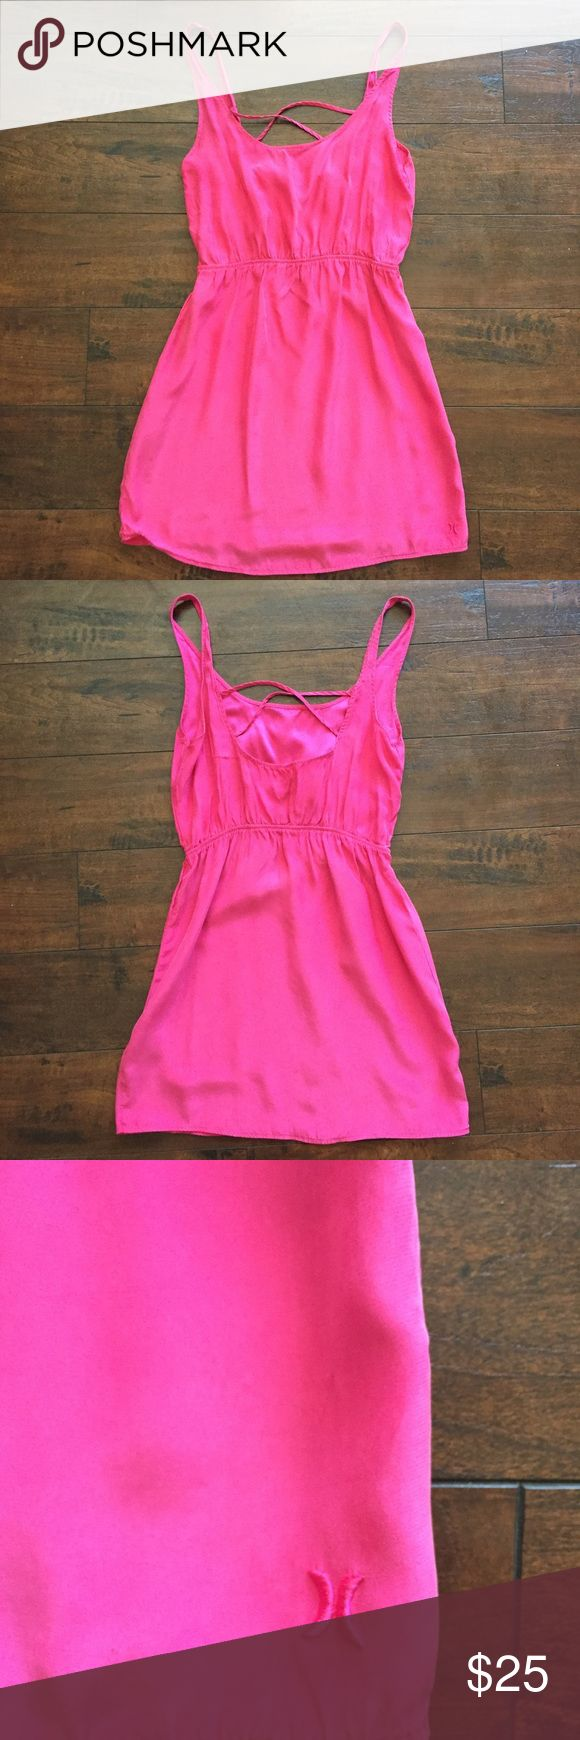 "Hurley hot pink SILK mini dress Hurley hot pink mini dress Size Medium 60% SILK 40% cupro  VERY SOFT!!!! Was very expensive due to being made out of silk Only worn a few times EXCELLENT condition Beautiful, vibrant color Criss cross pattern on the back  Small embroidered ""H"" on the bottom corner    ✅Make an offer ✅Bundle and save  🛍Happy Poshing! Hurley Dresses Mini"